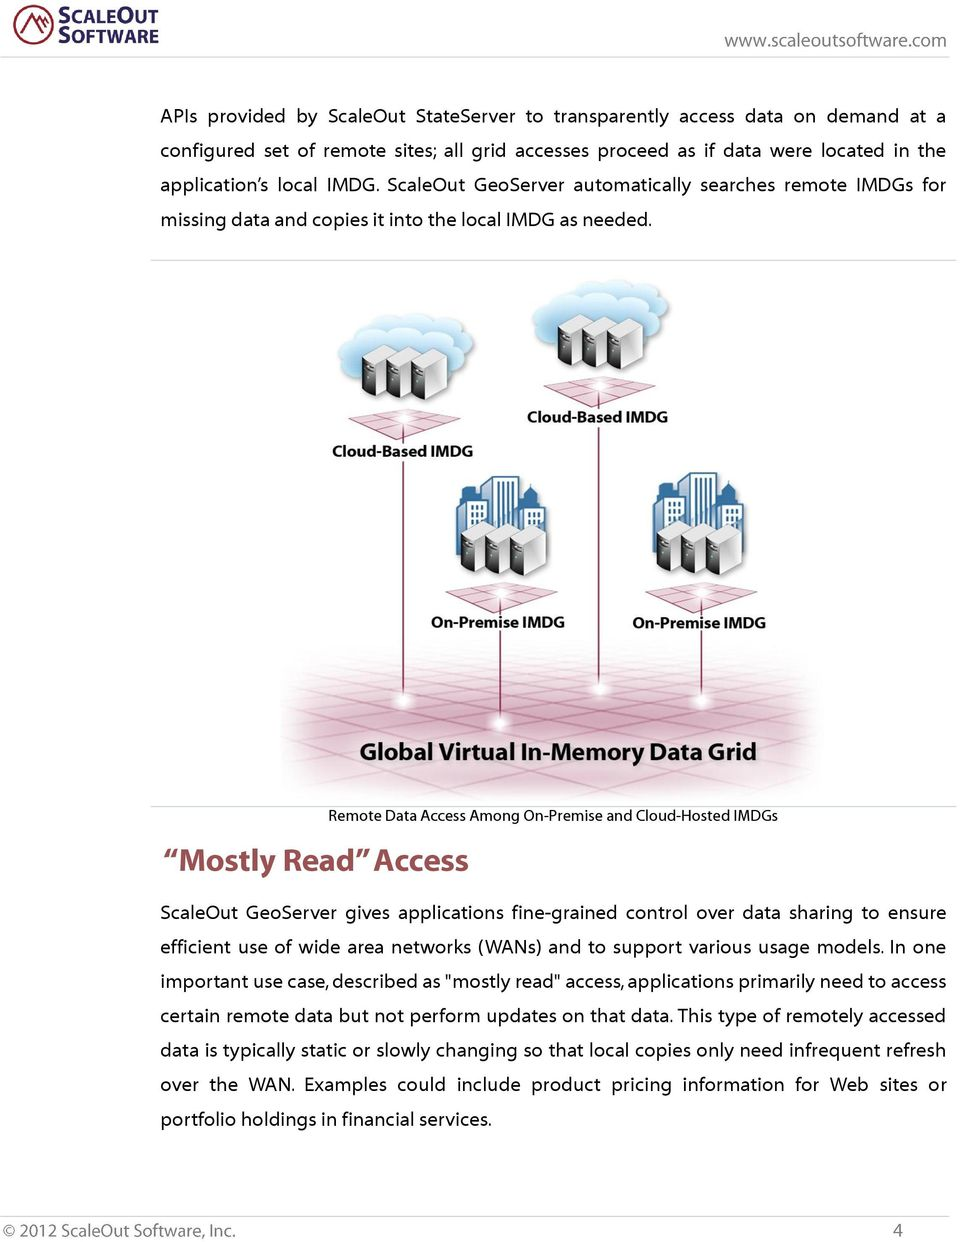 Mostly Read Access Remote Data Access Among On-Premise and Cloud-Hosted IMDGs ScaleOut GeoServer gives applications fine-grained control over data sharing to ensure efficient use of wide area